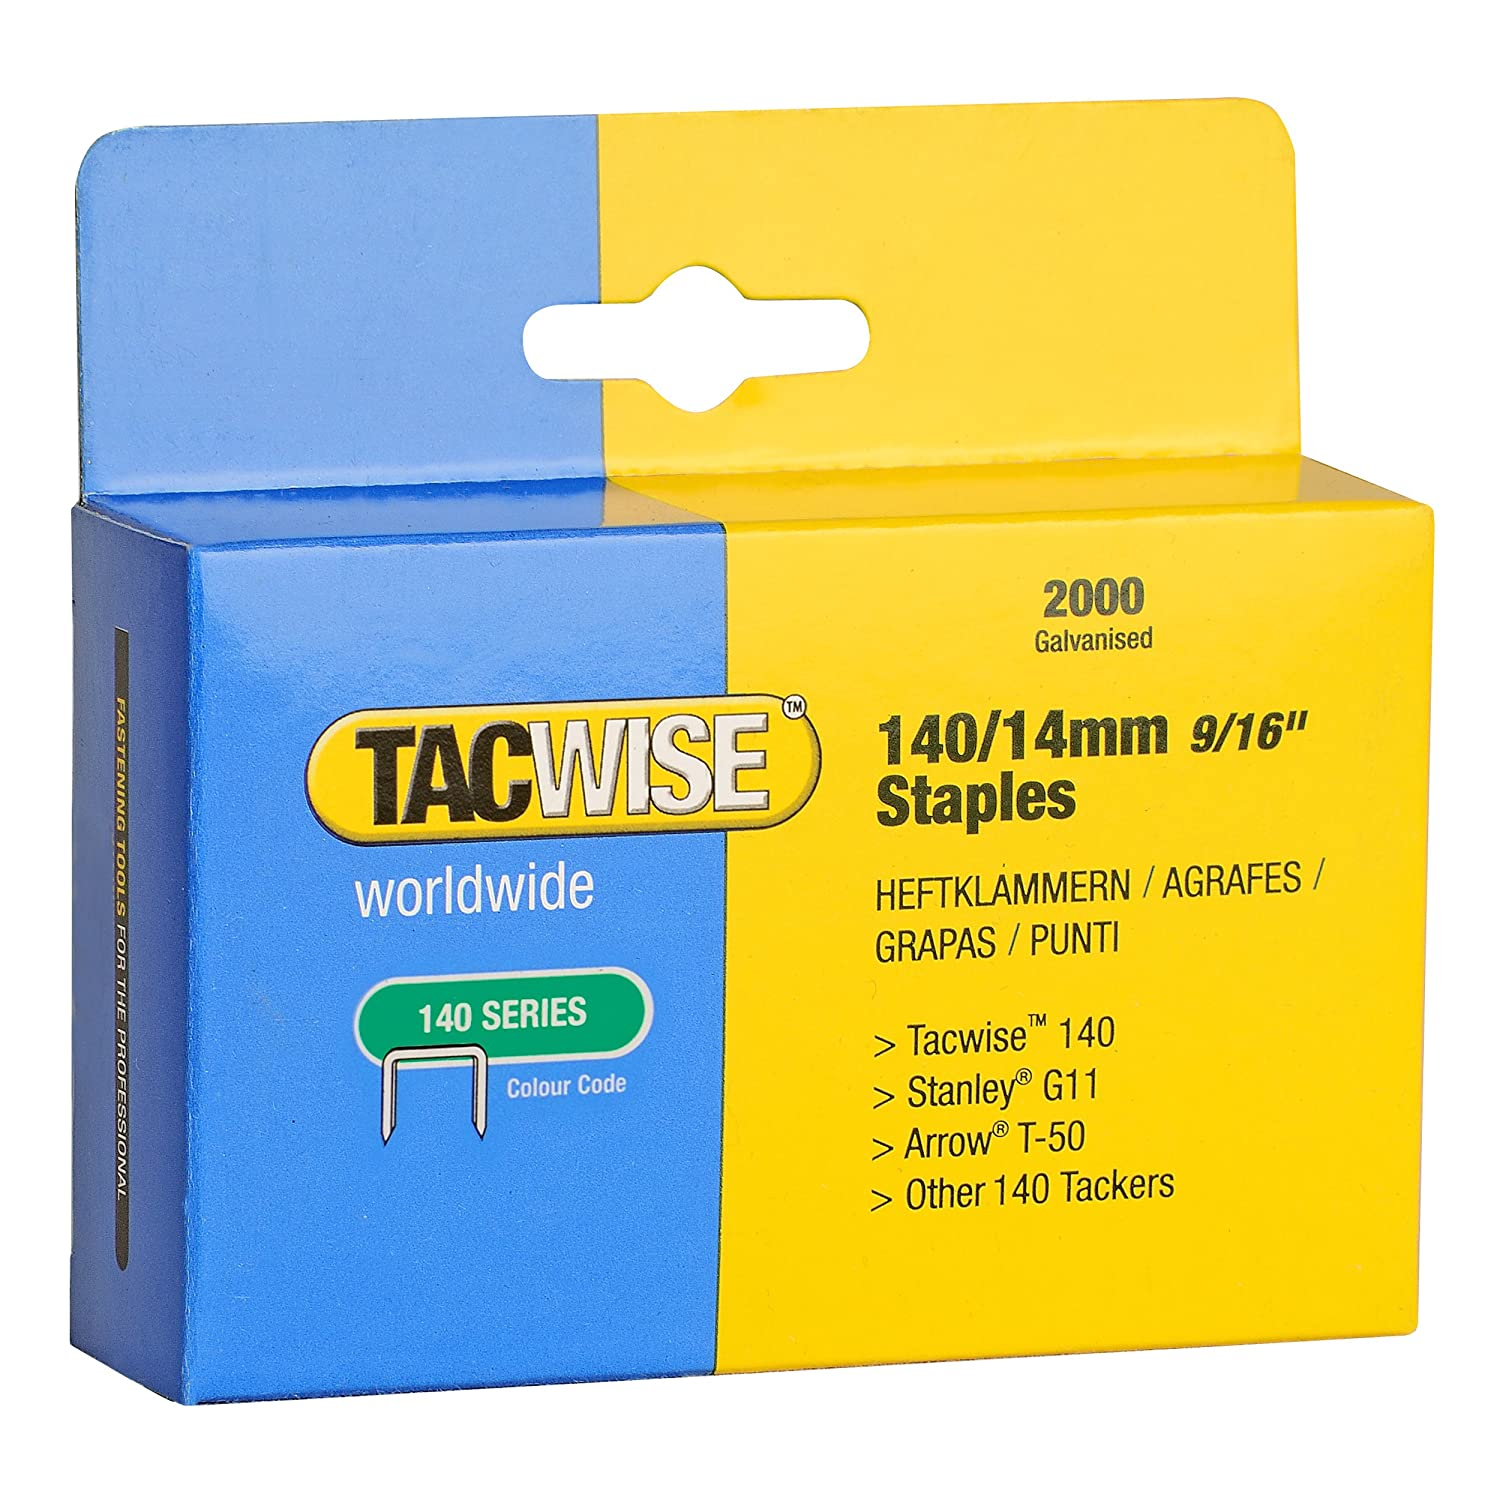 Tacwise 140 14mm Staples For Staple Gun 2000 Amazoncouk Office Products